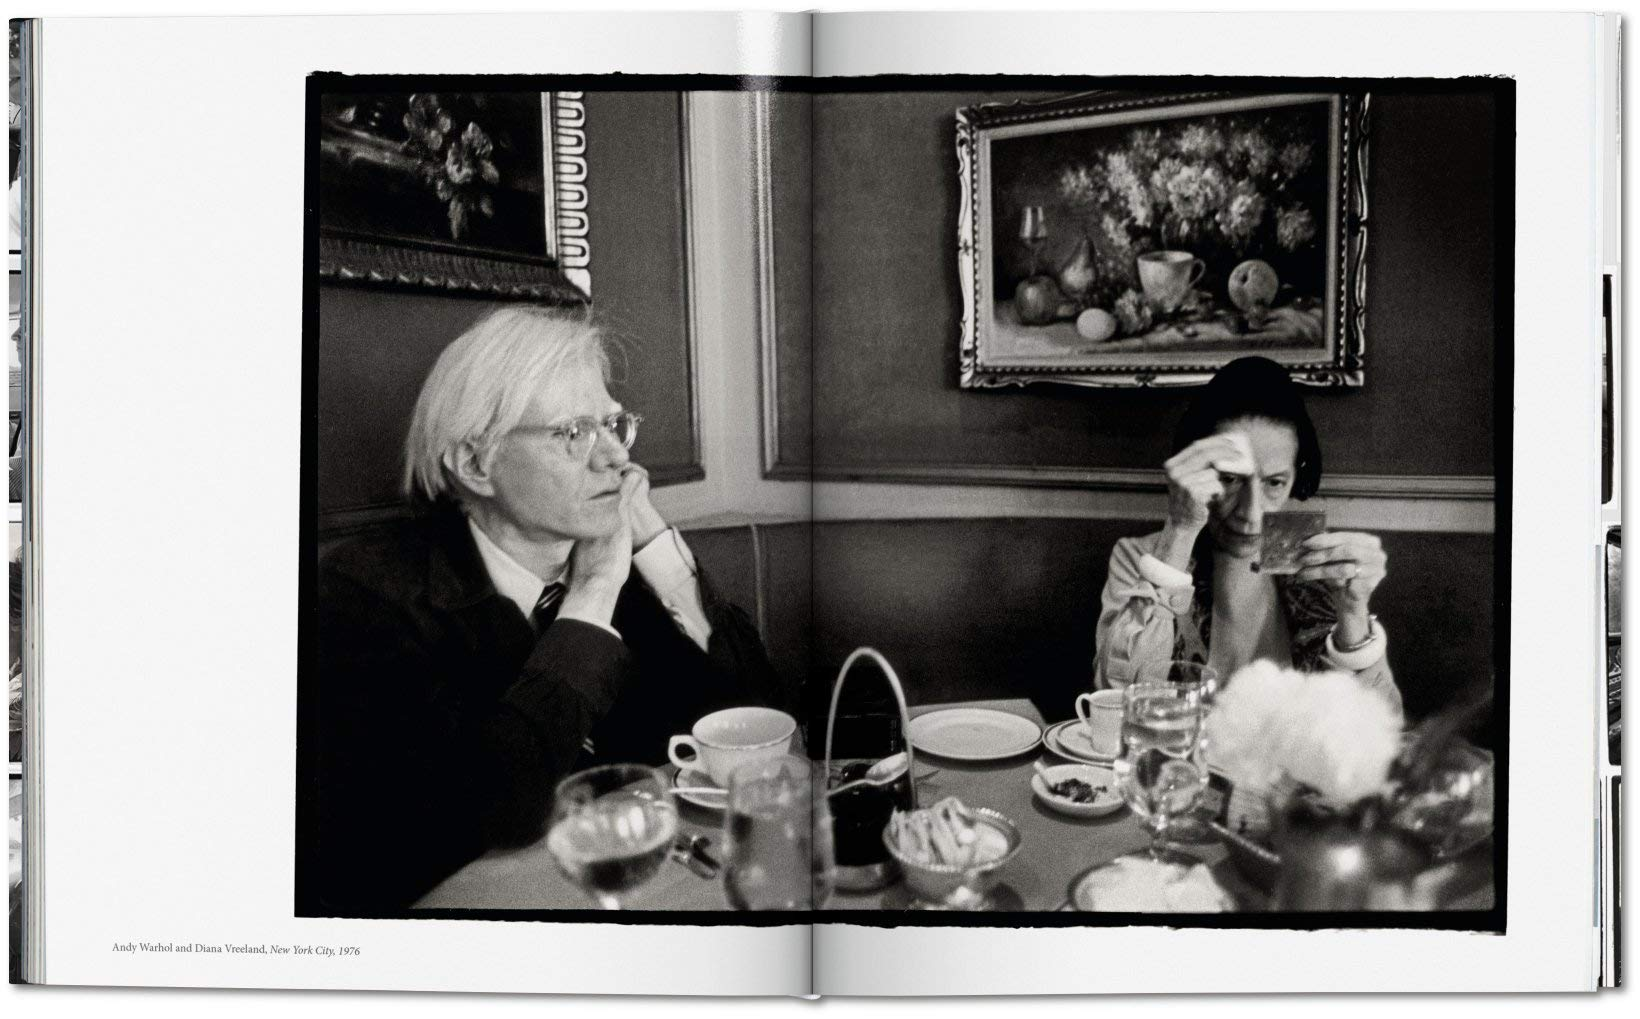 Annie Leibovitz: The Early Years, 1970-1983 Archive Project: Amazon.co.uk:  Luc Sante, Jann S. Wenner, Annie Leibovitz: Books